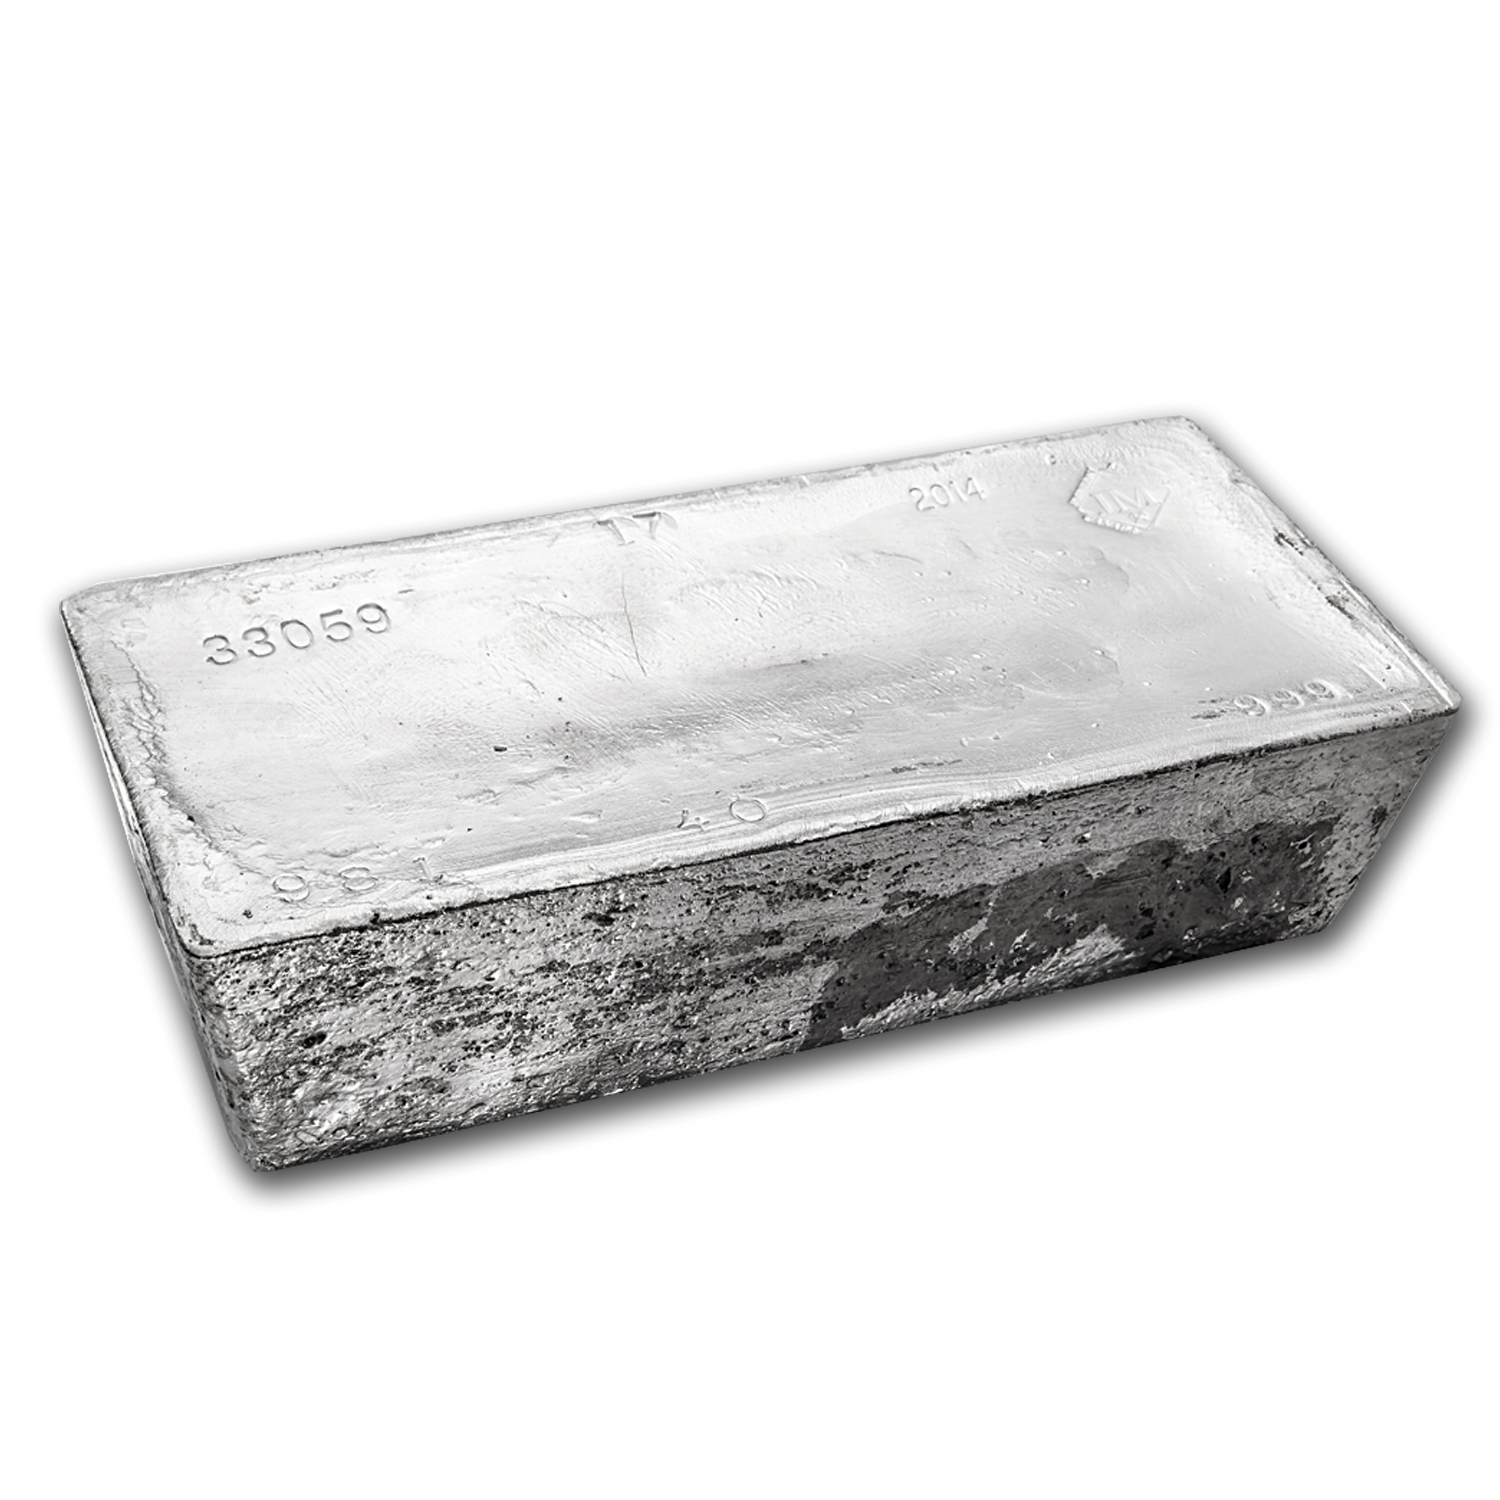 997.40 oz Silver Bar - Johnson Matthey